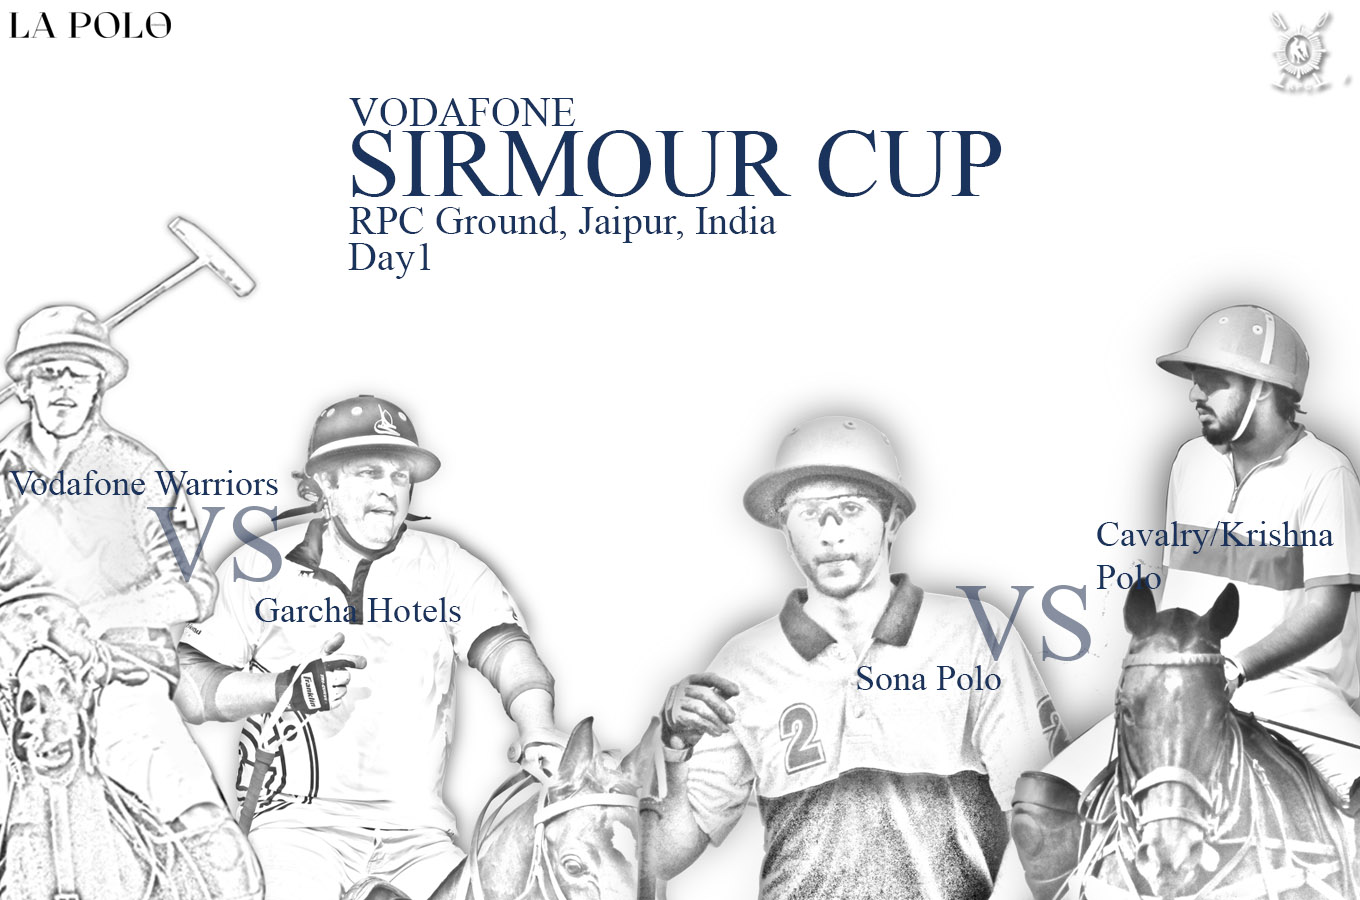 Capturing The Day 1 Of Vodafone Sirmour Cup In Intensity